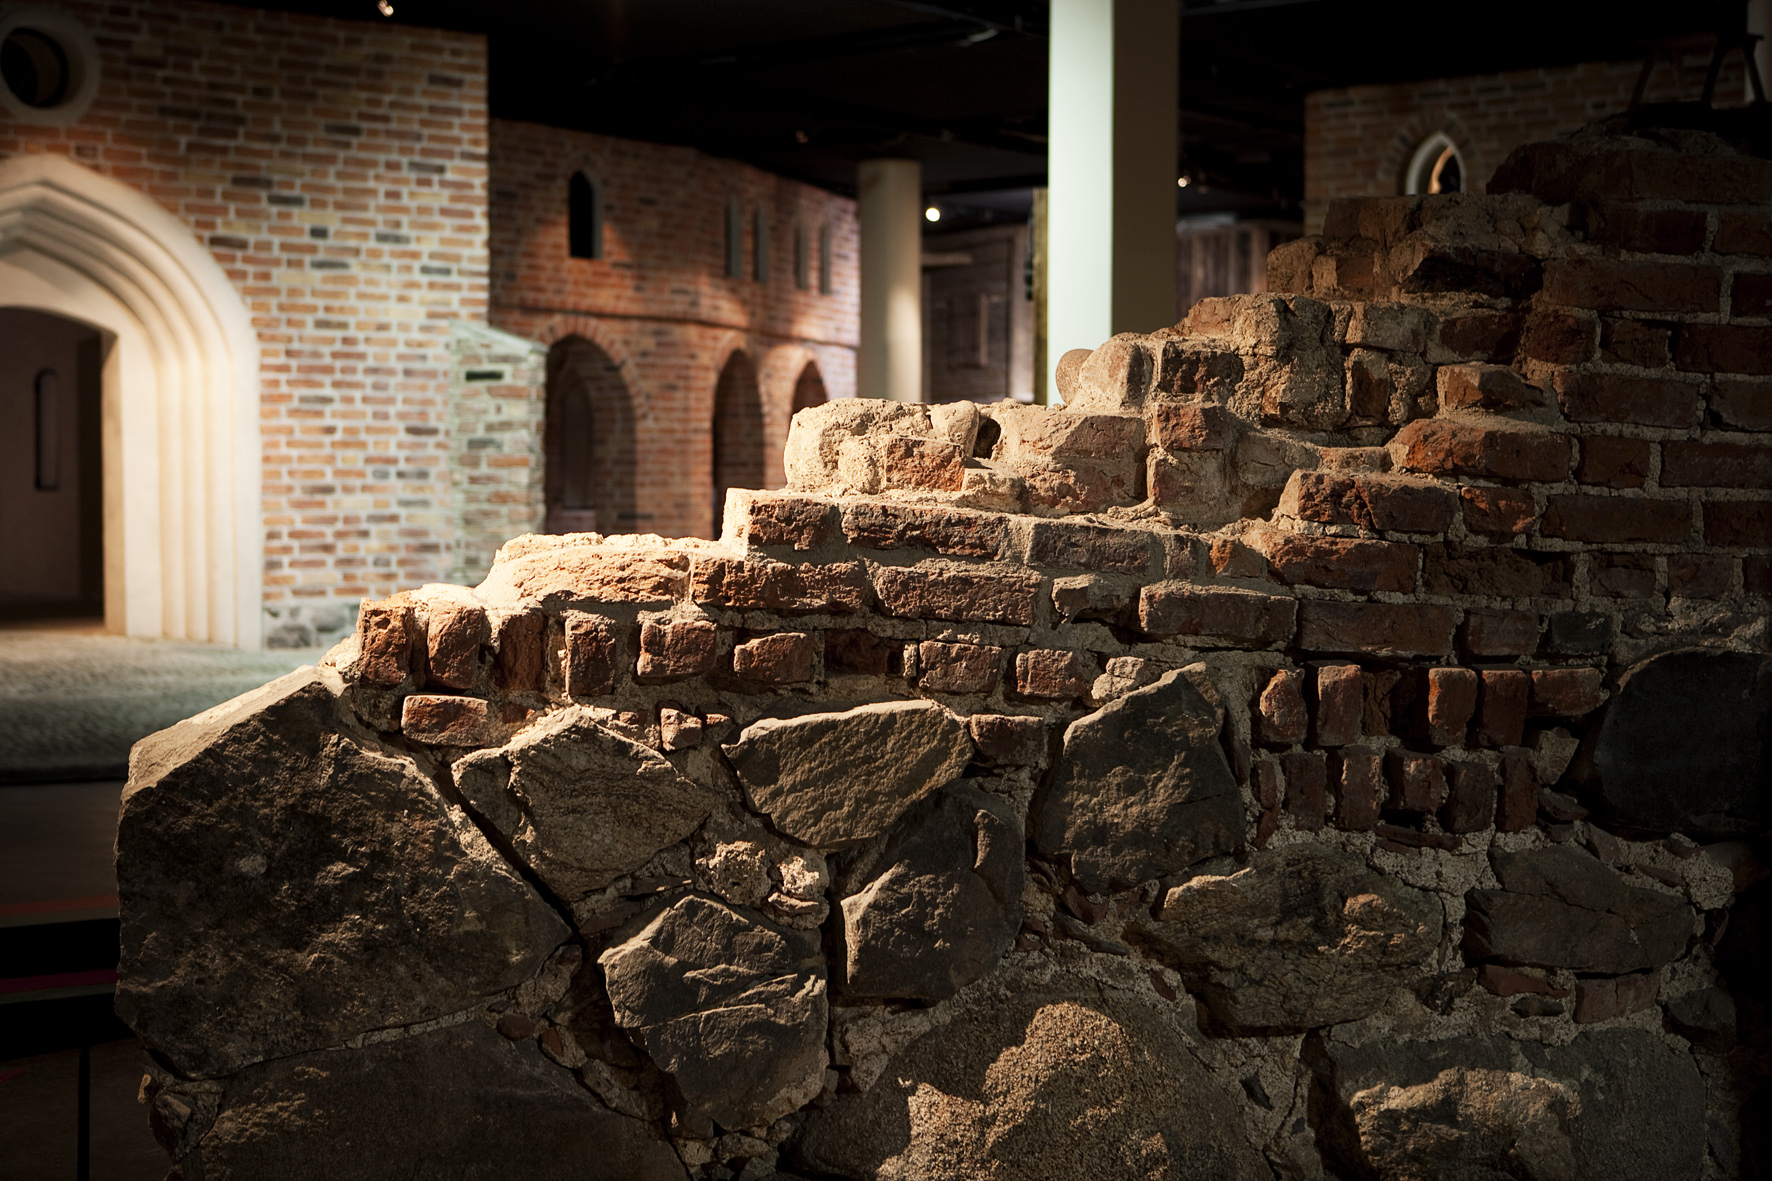 Part of the city wall in the exhibition.